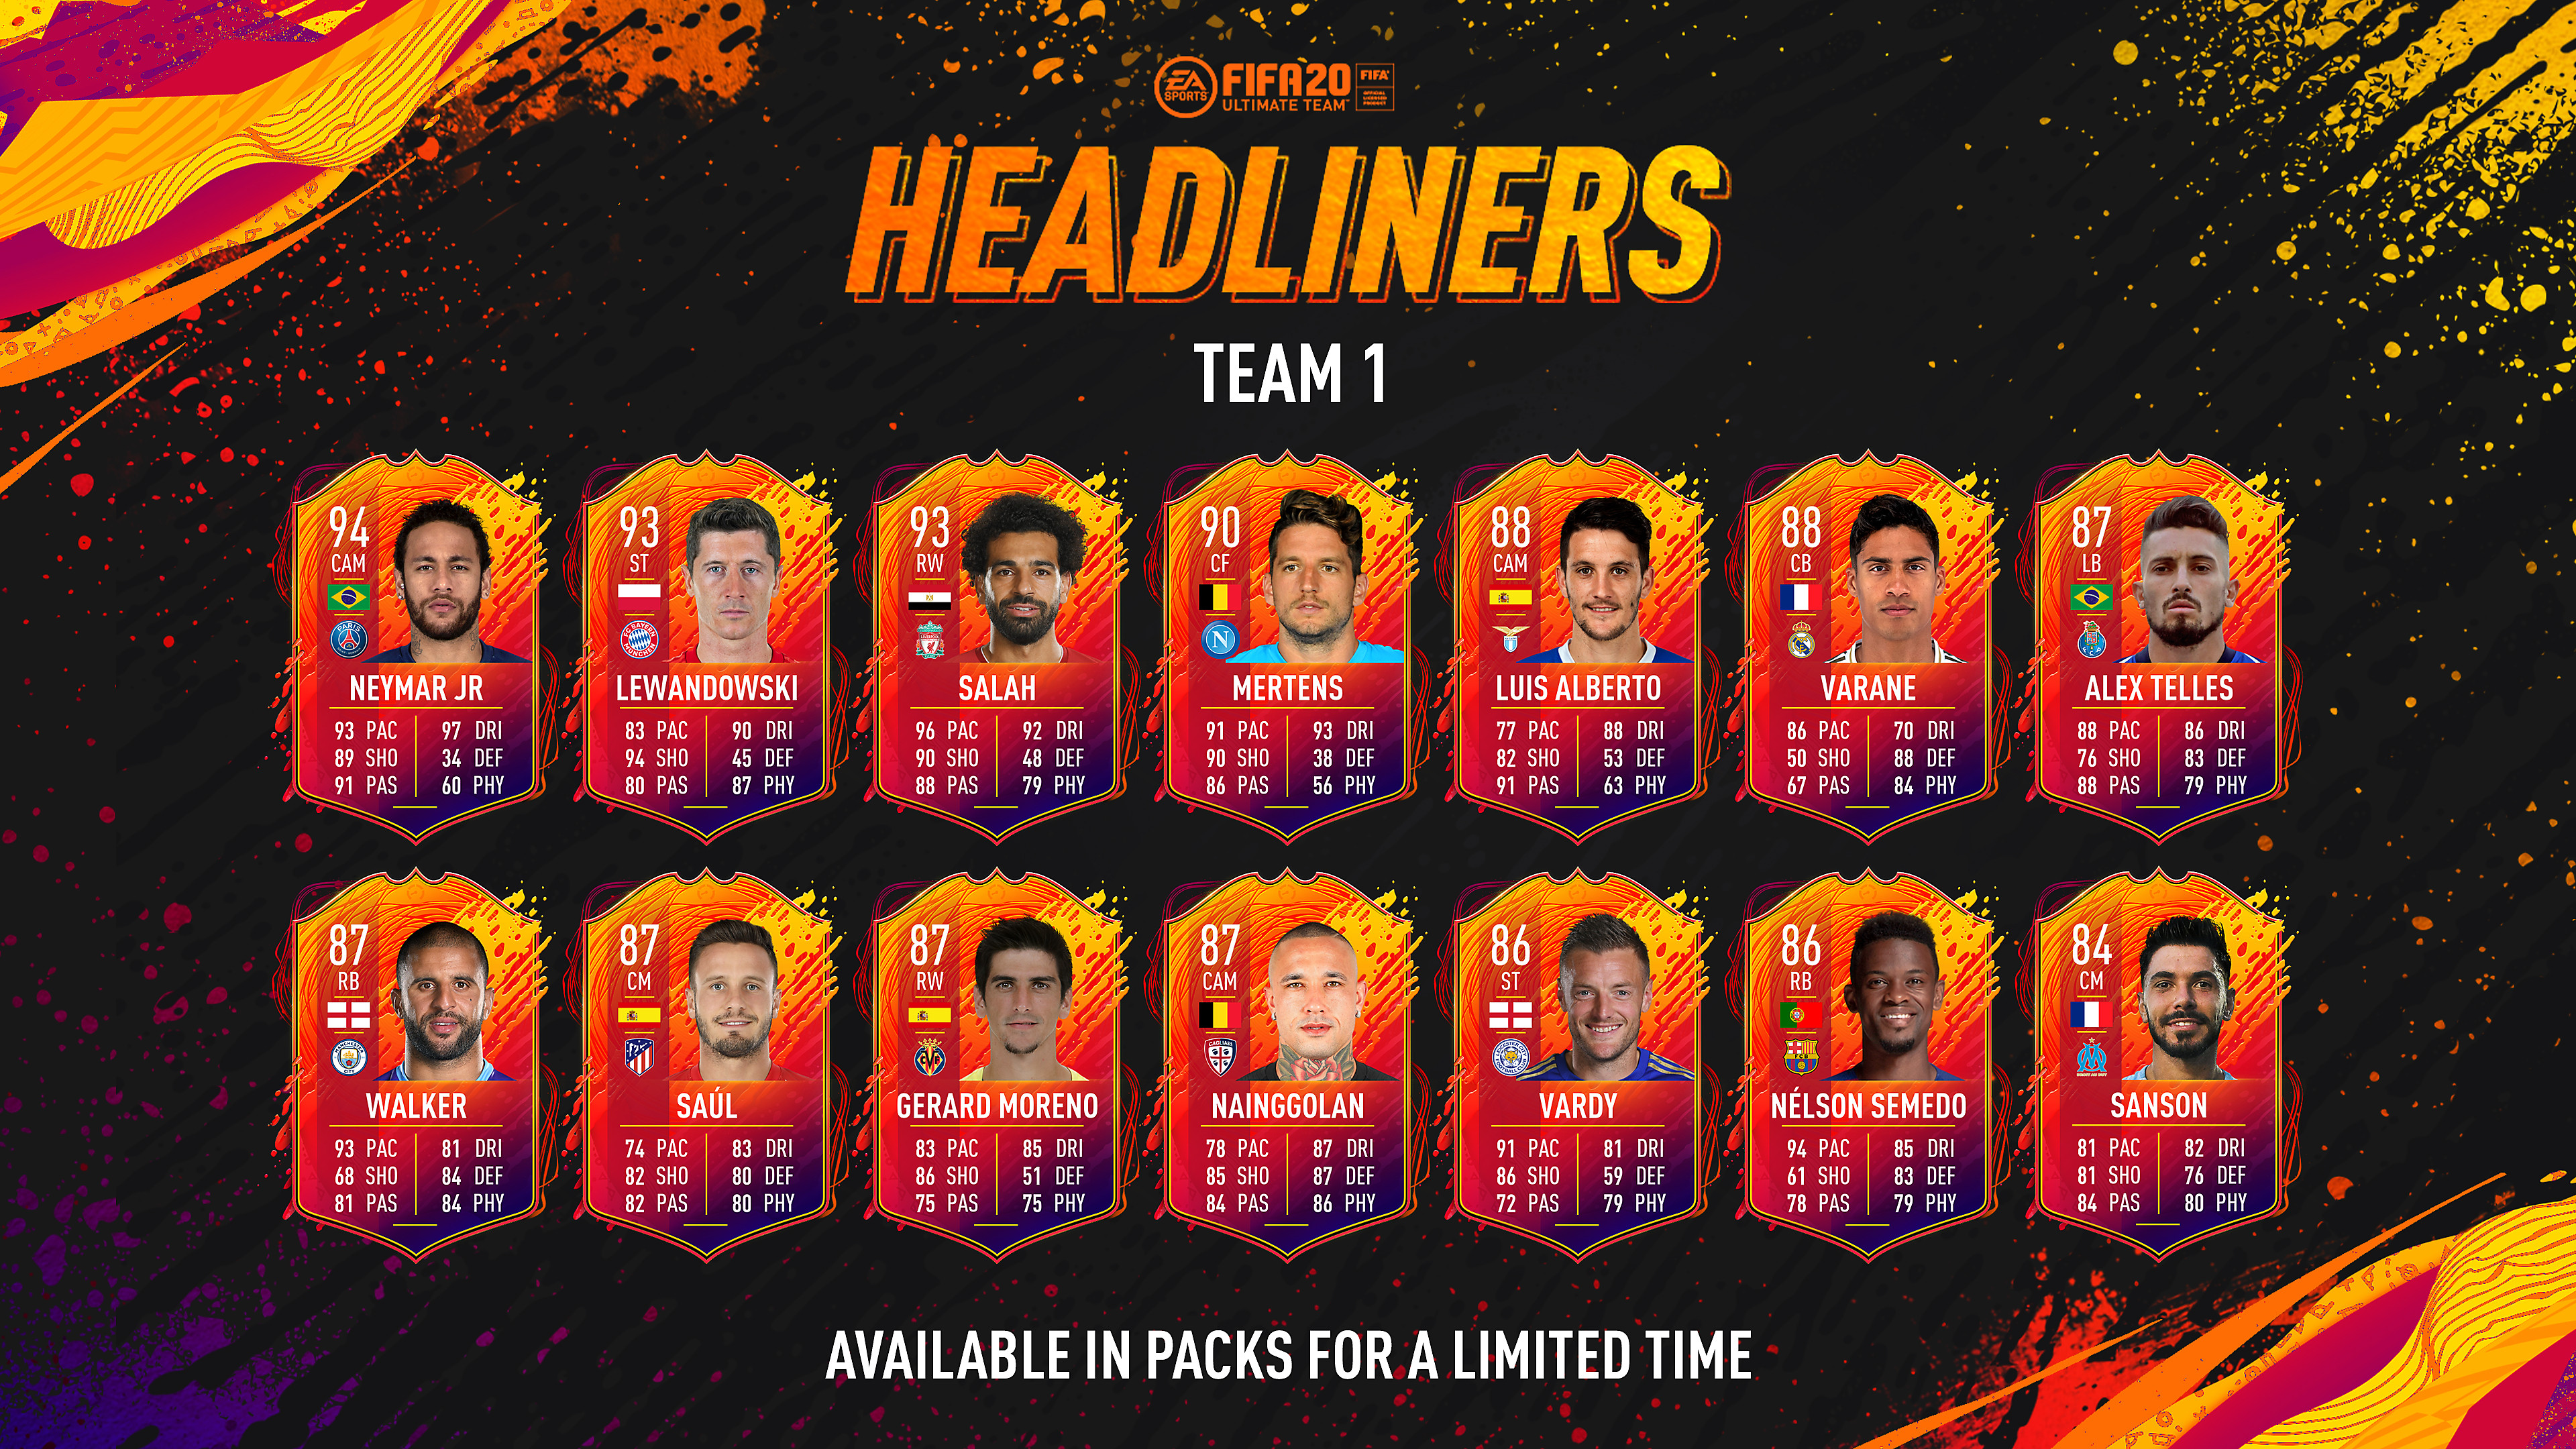 FIFA 20 - Headliners: Available in packs for a limited time